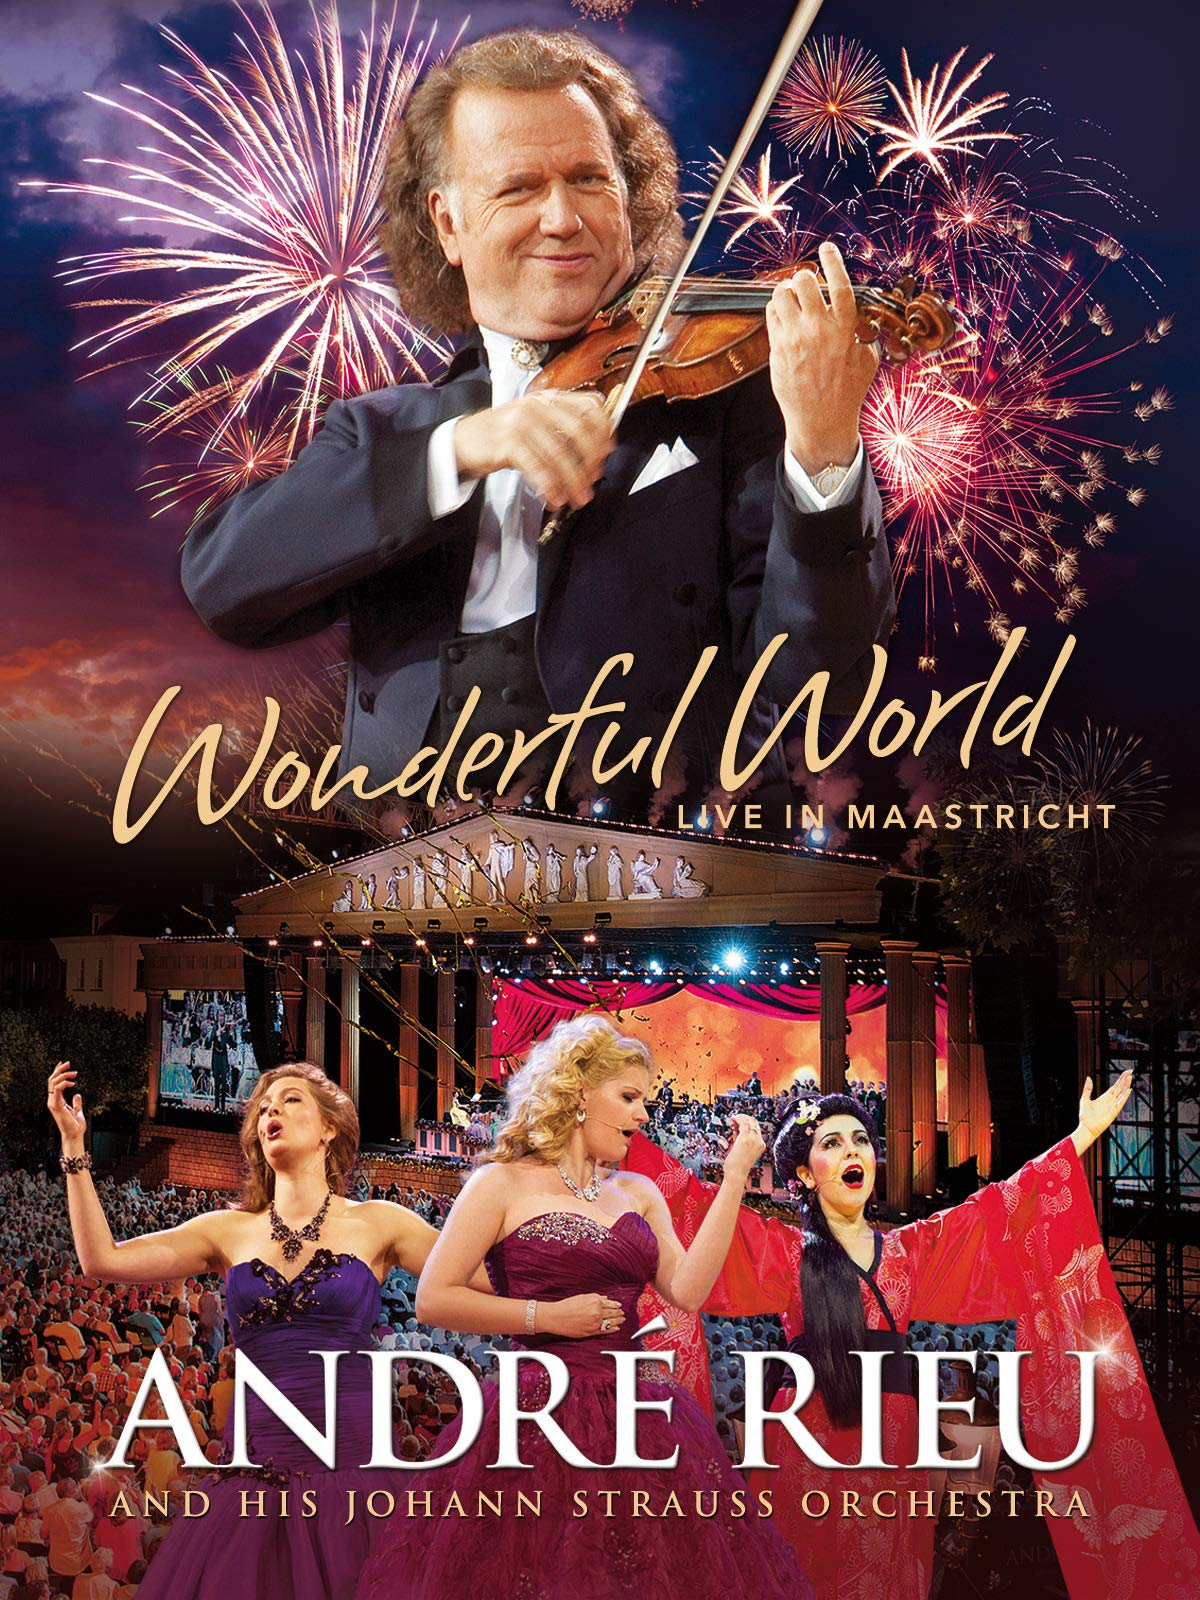 André Rieu And His Johann Strauss Orchestra - Wonderful World on Amazon Prime Instant Video UK